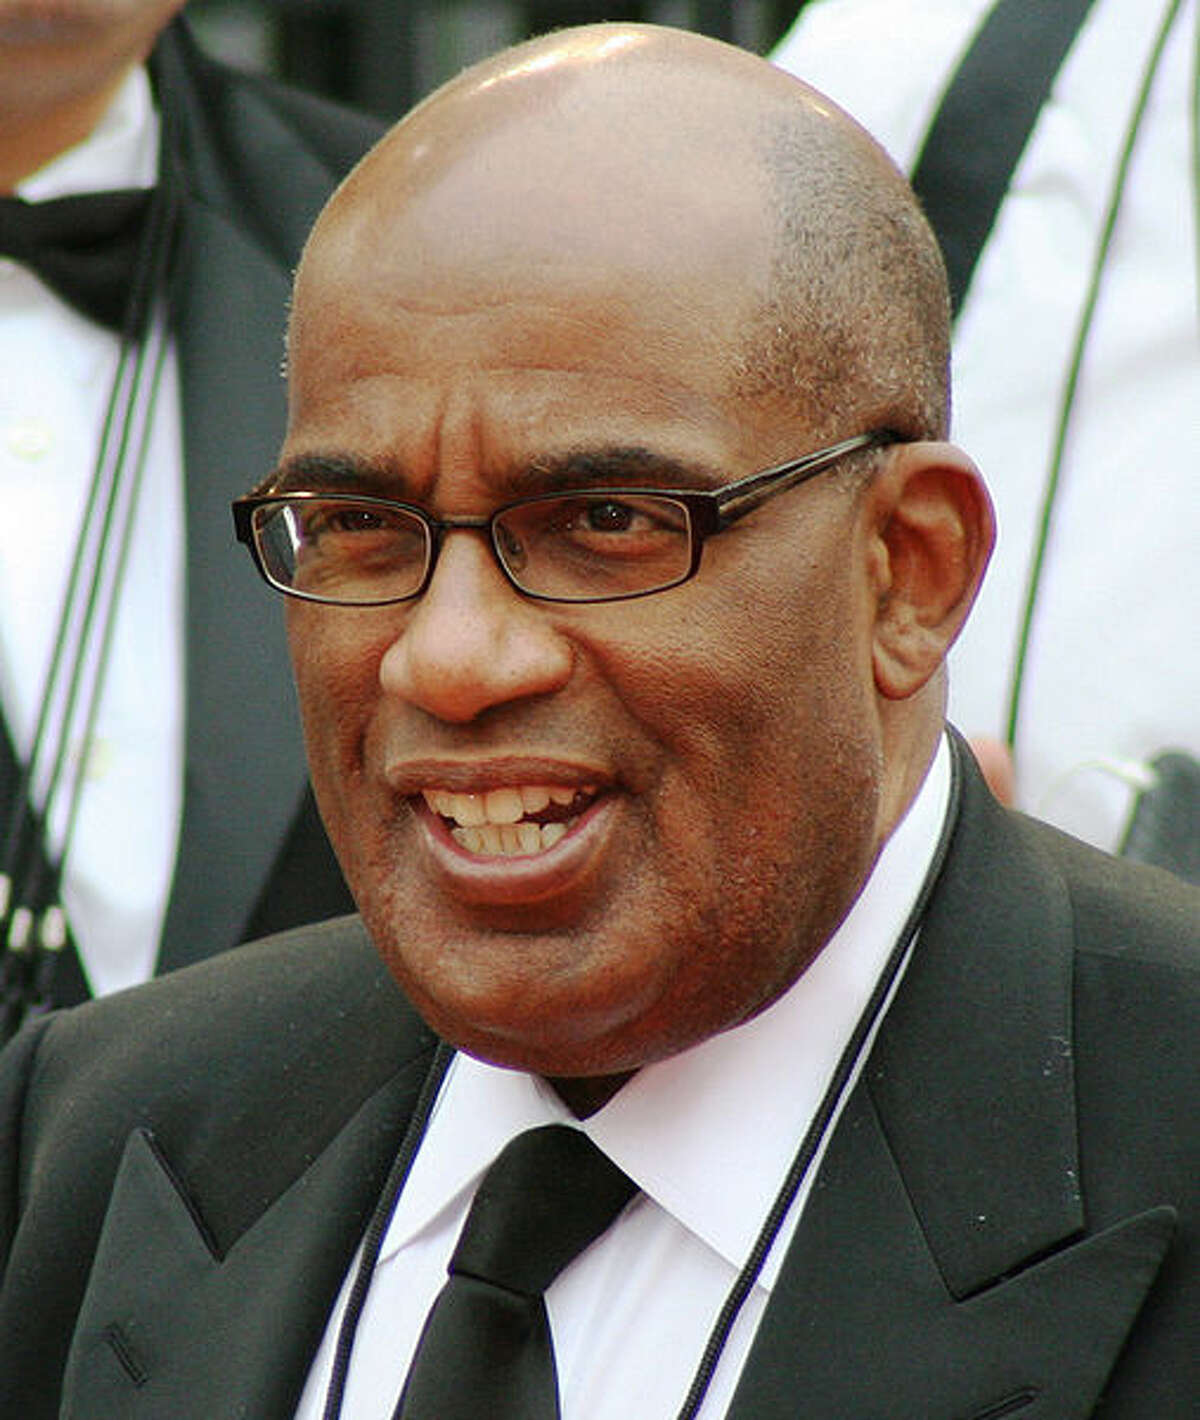 Al Roker at the 81st Academy Awards in February 2009.